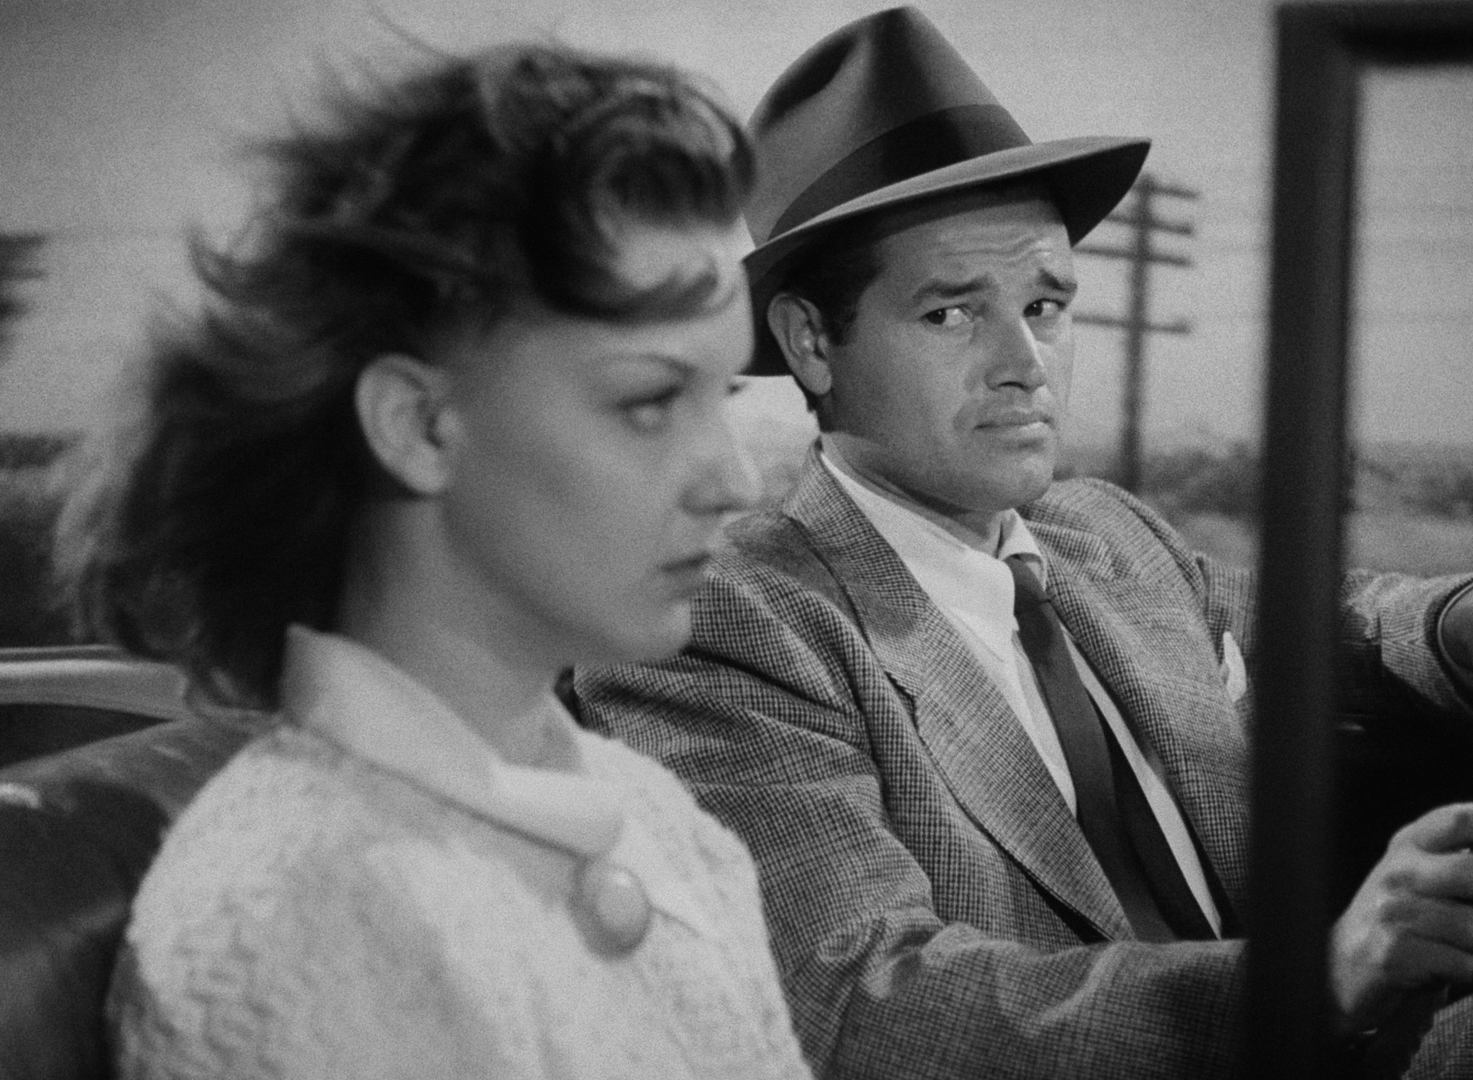 Al almost immediately regrets offering a ride to hitchhiker Vera (Ann Savage), who lets him know she is fully aware that the car does not belong to Al.